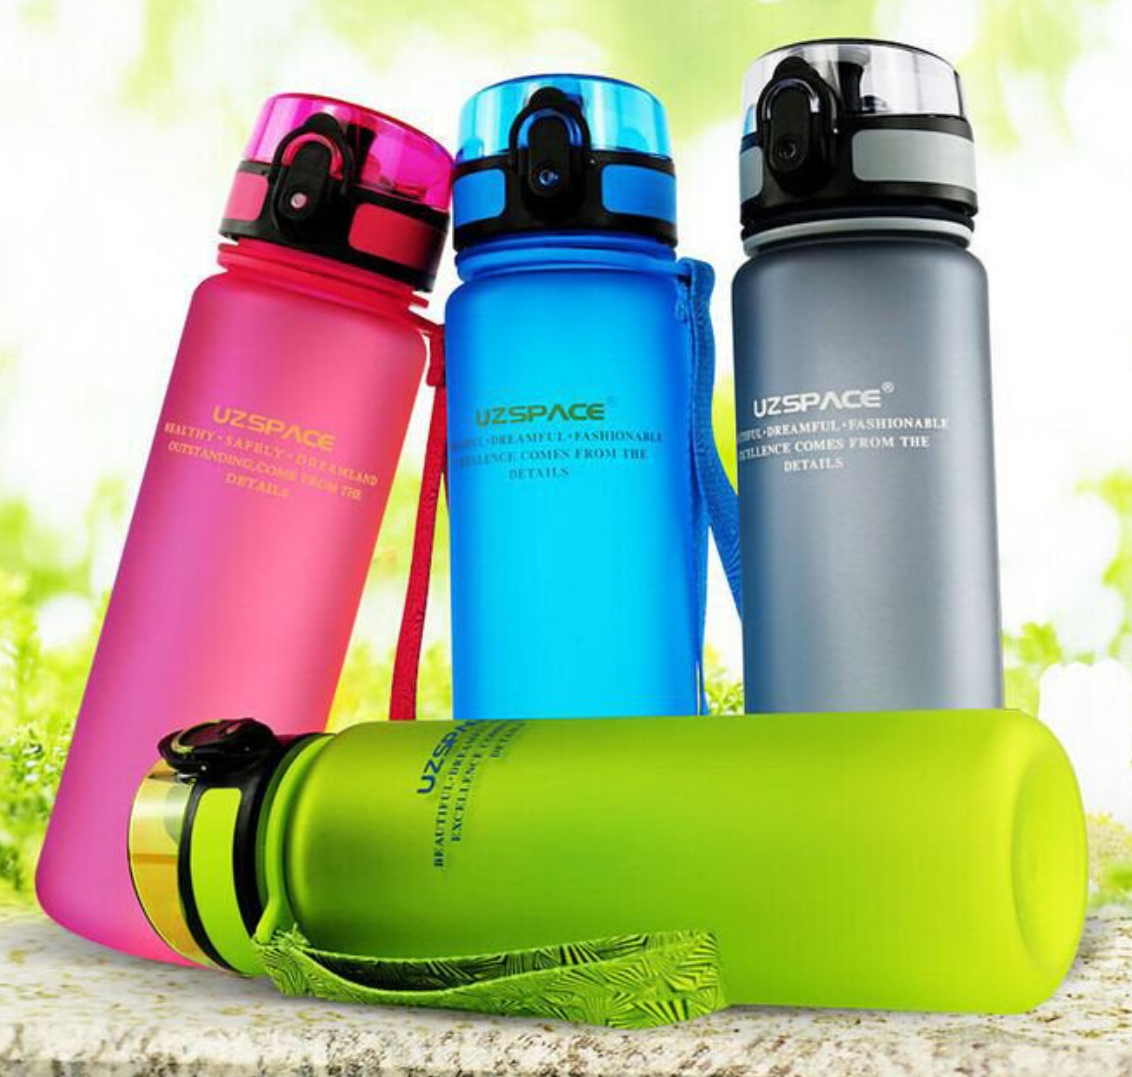 space cup leak-proof spring water bottles